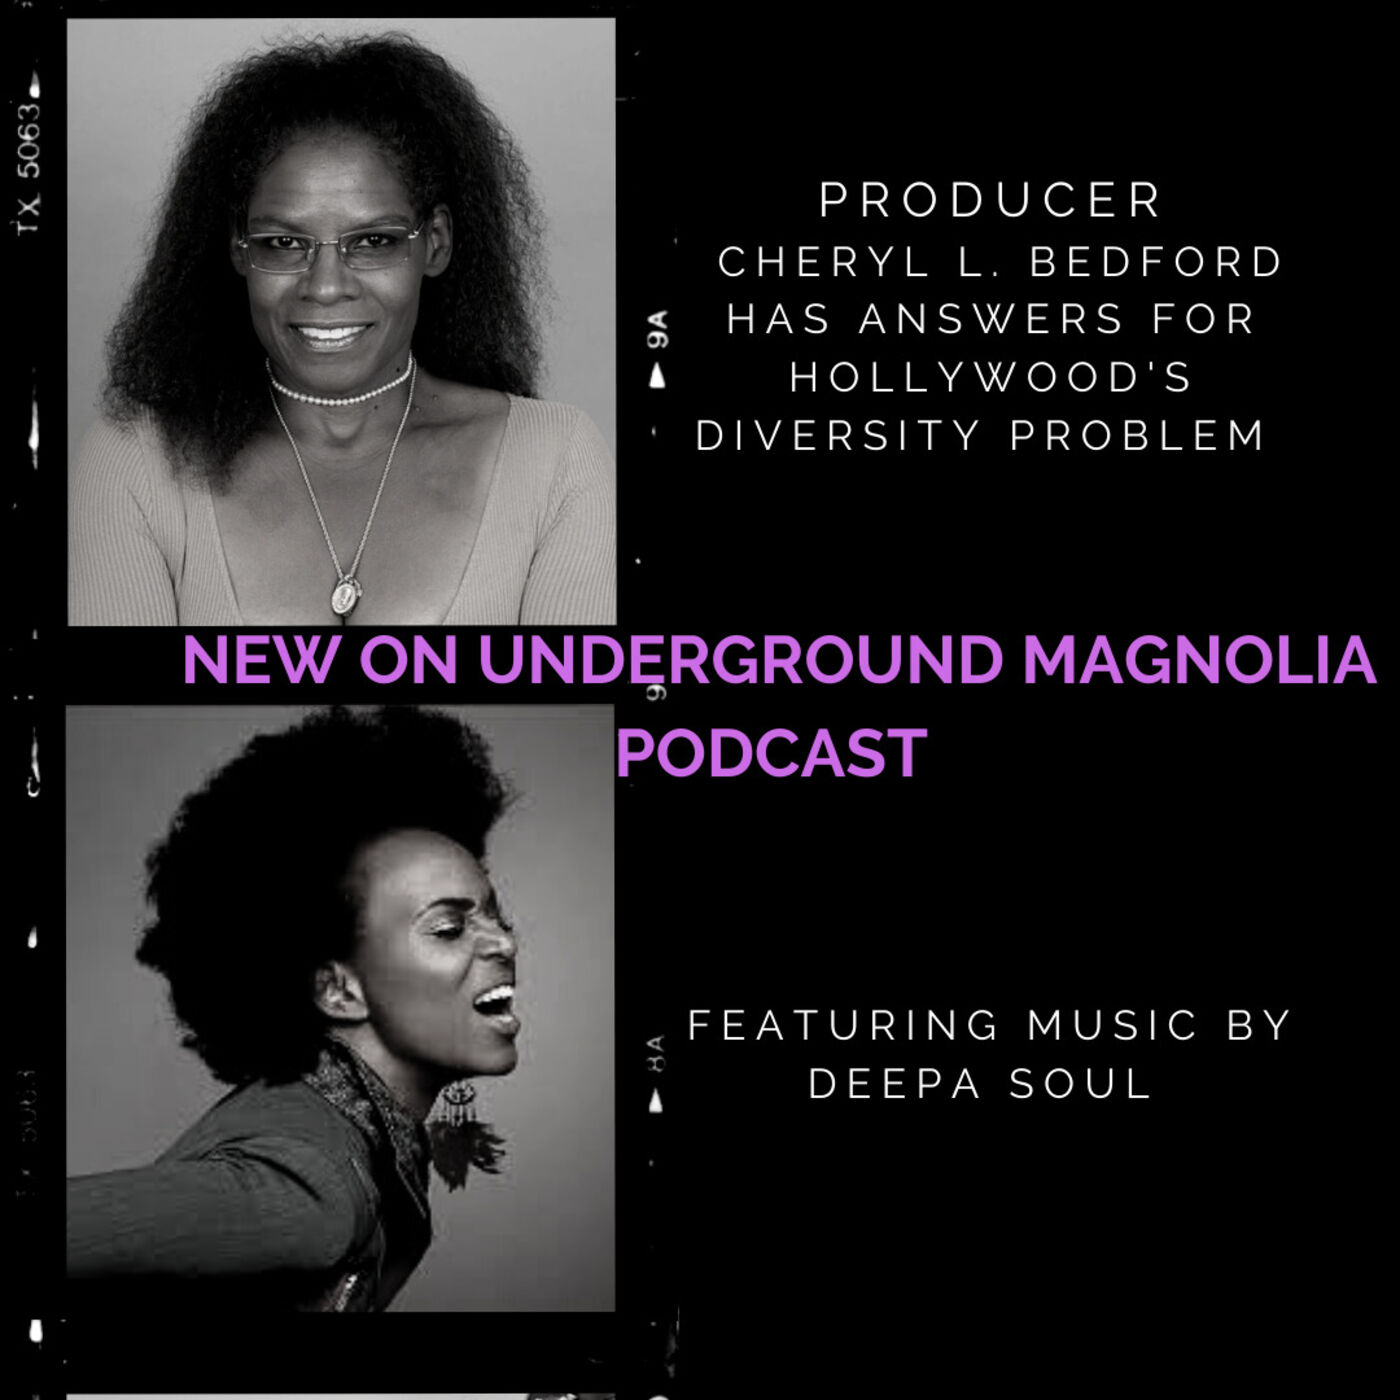 Producer Cheryl L. Bedford's Women of Color Unite Has Answers for Hollywood's Diversity Problem & Music by Deepa Soul